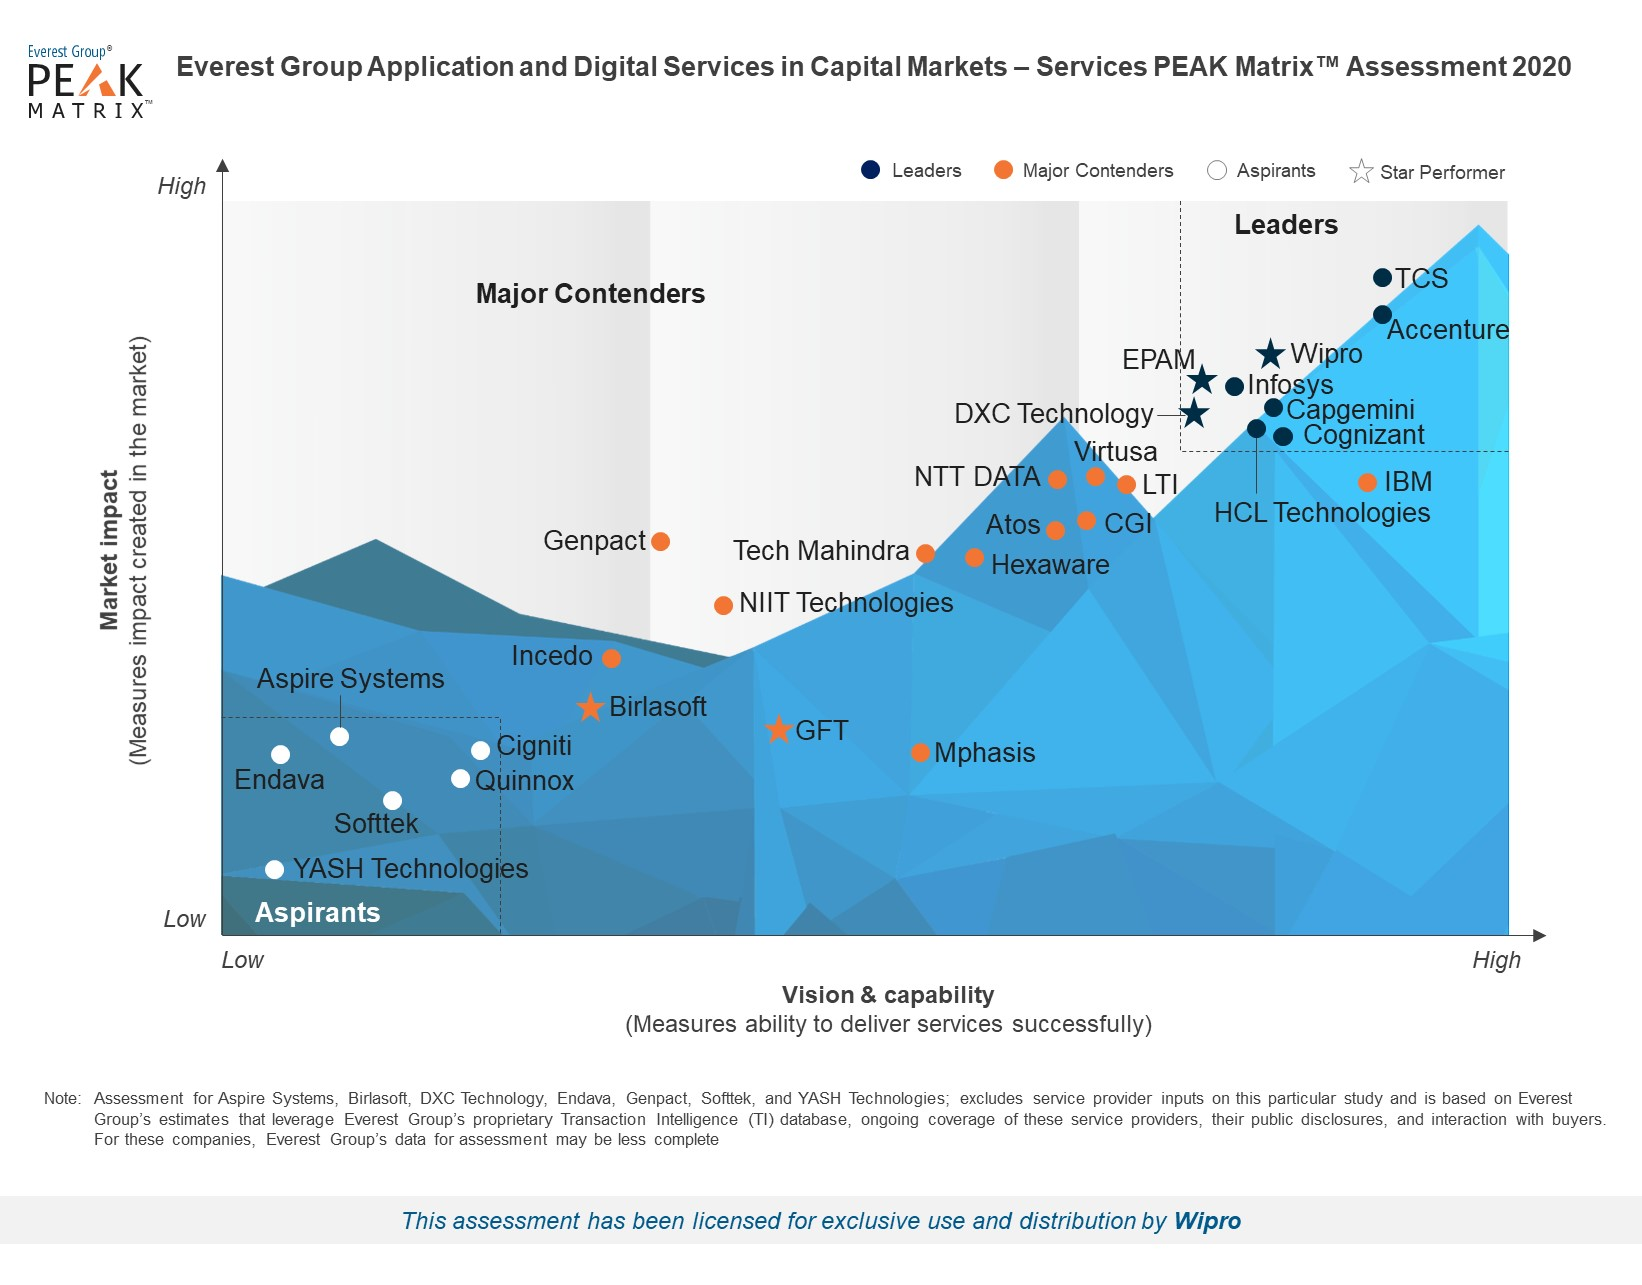 Wipro positioned as a Leader and Star Performer in Application and Digital Services in Capital Markets PEAK MatrixTM 2020